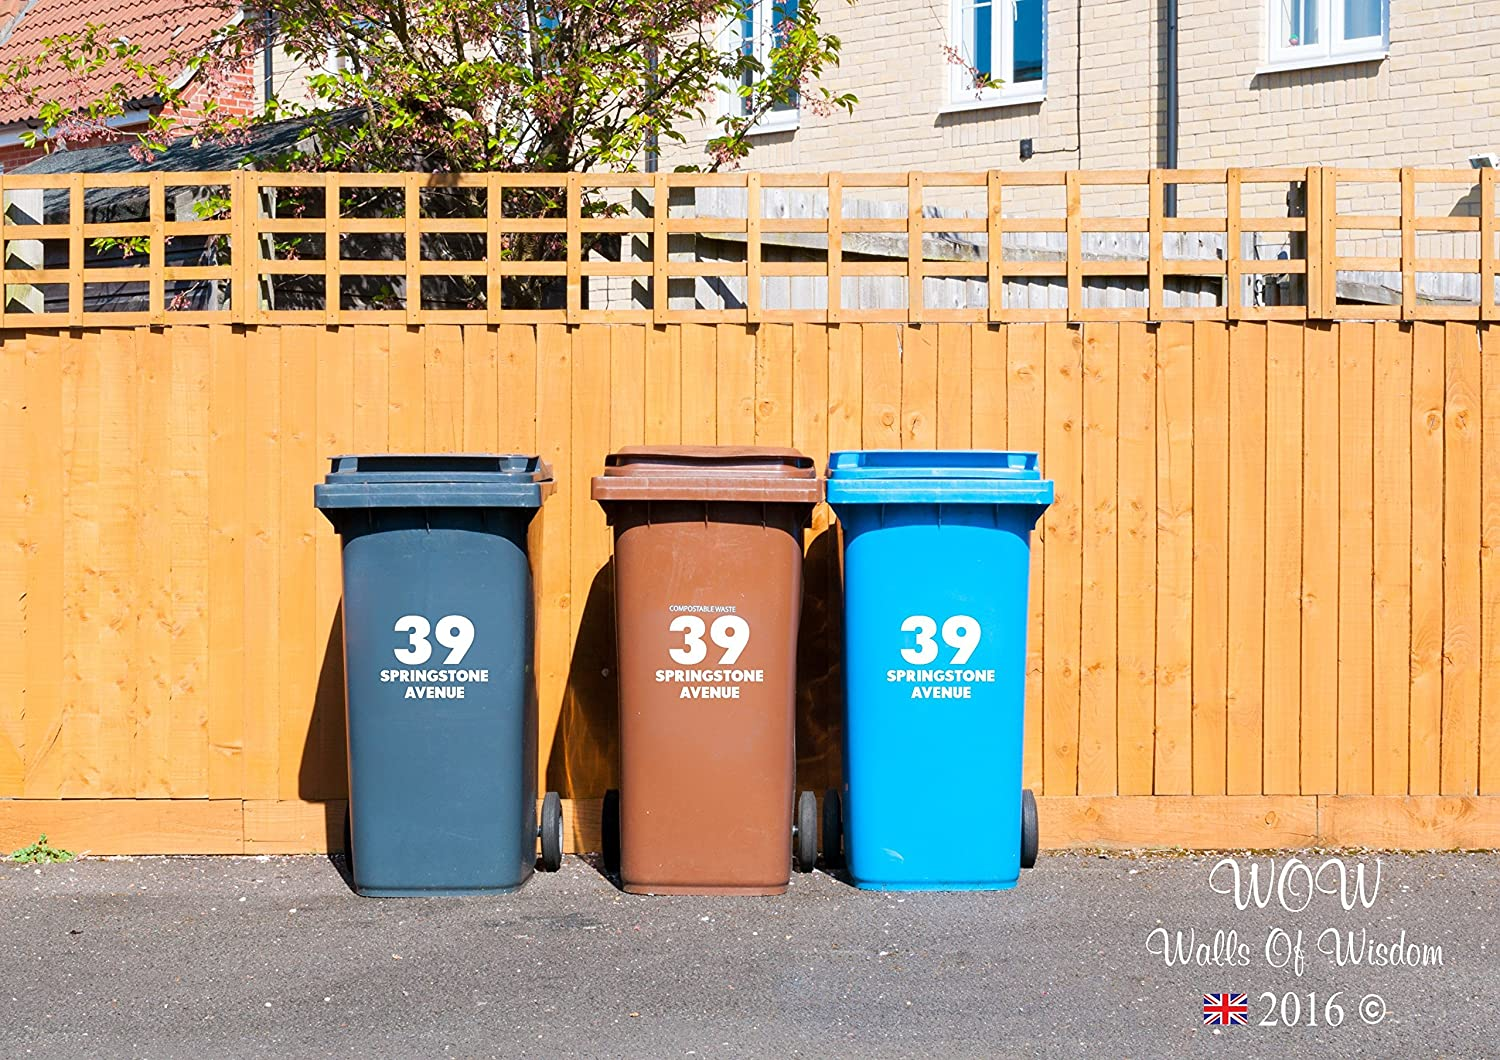 3 x Personalised Wheelie Bin Stickers House Number Street Name, Home, Office, Business, Easy to Apply. Walls of Wisdom